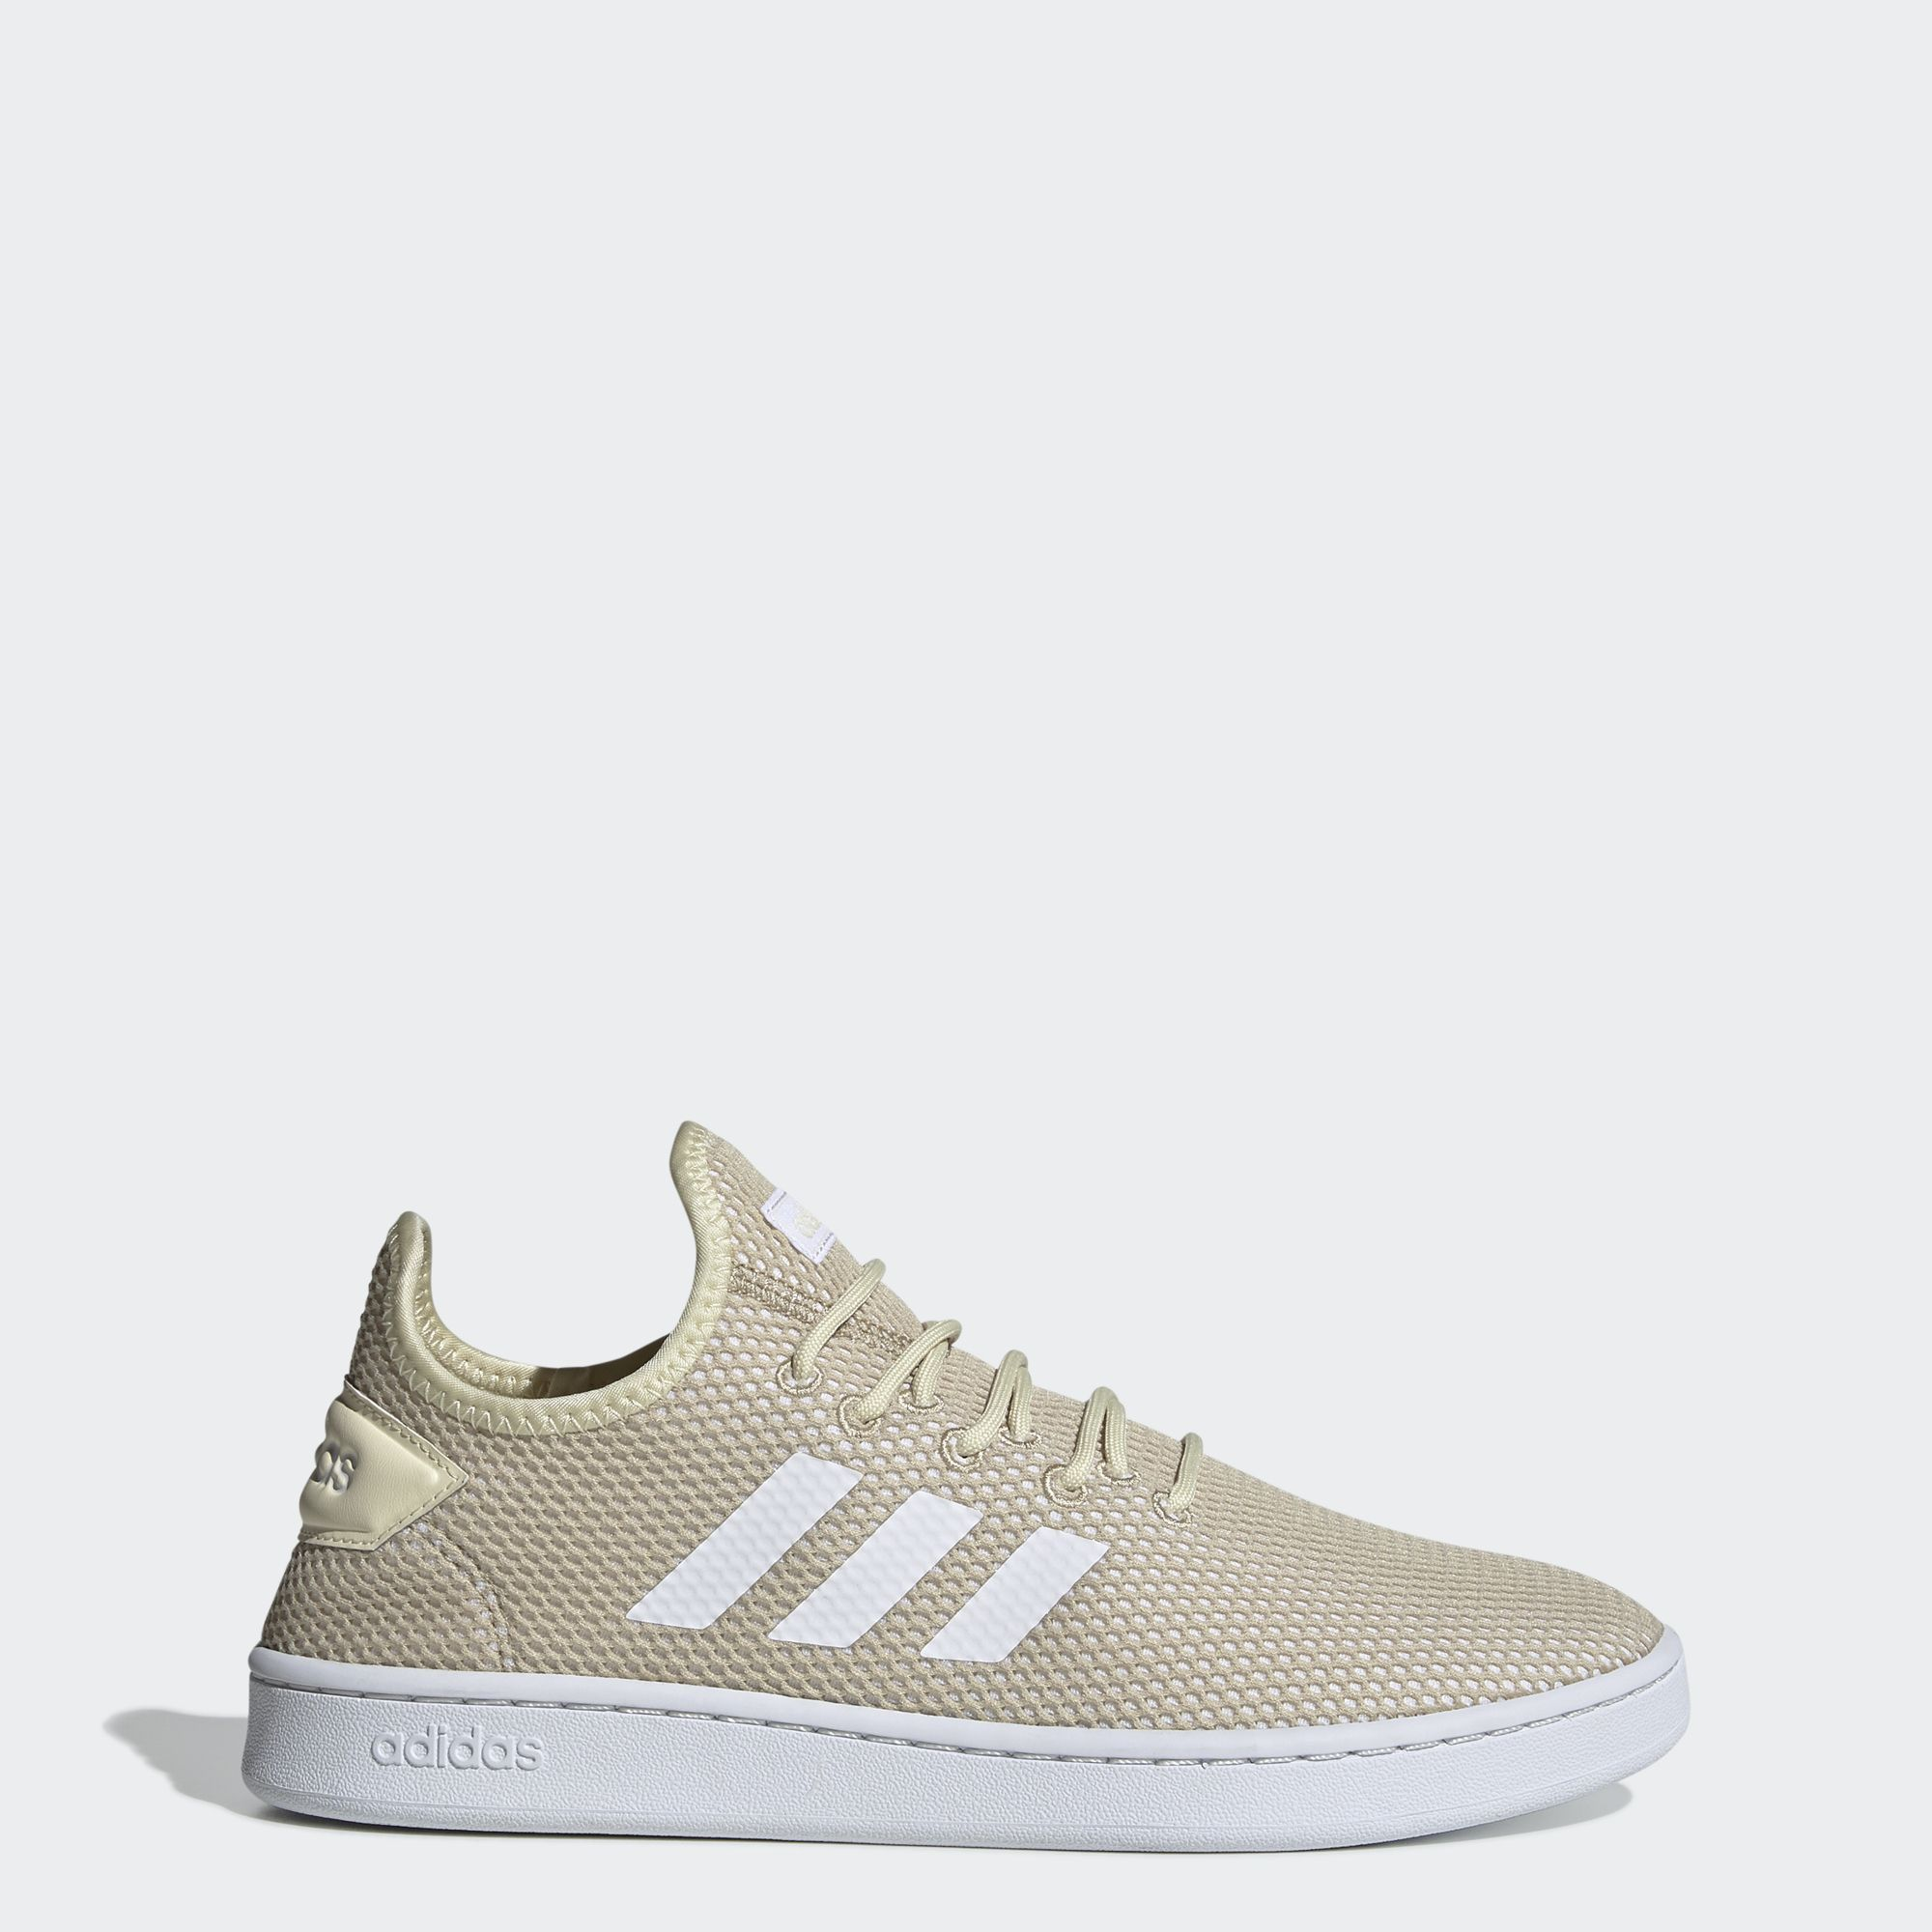 Mens Tennis Shoes online for sale with